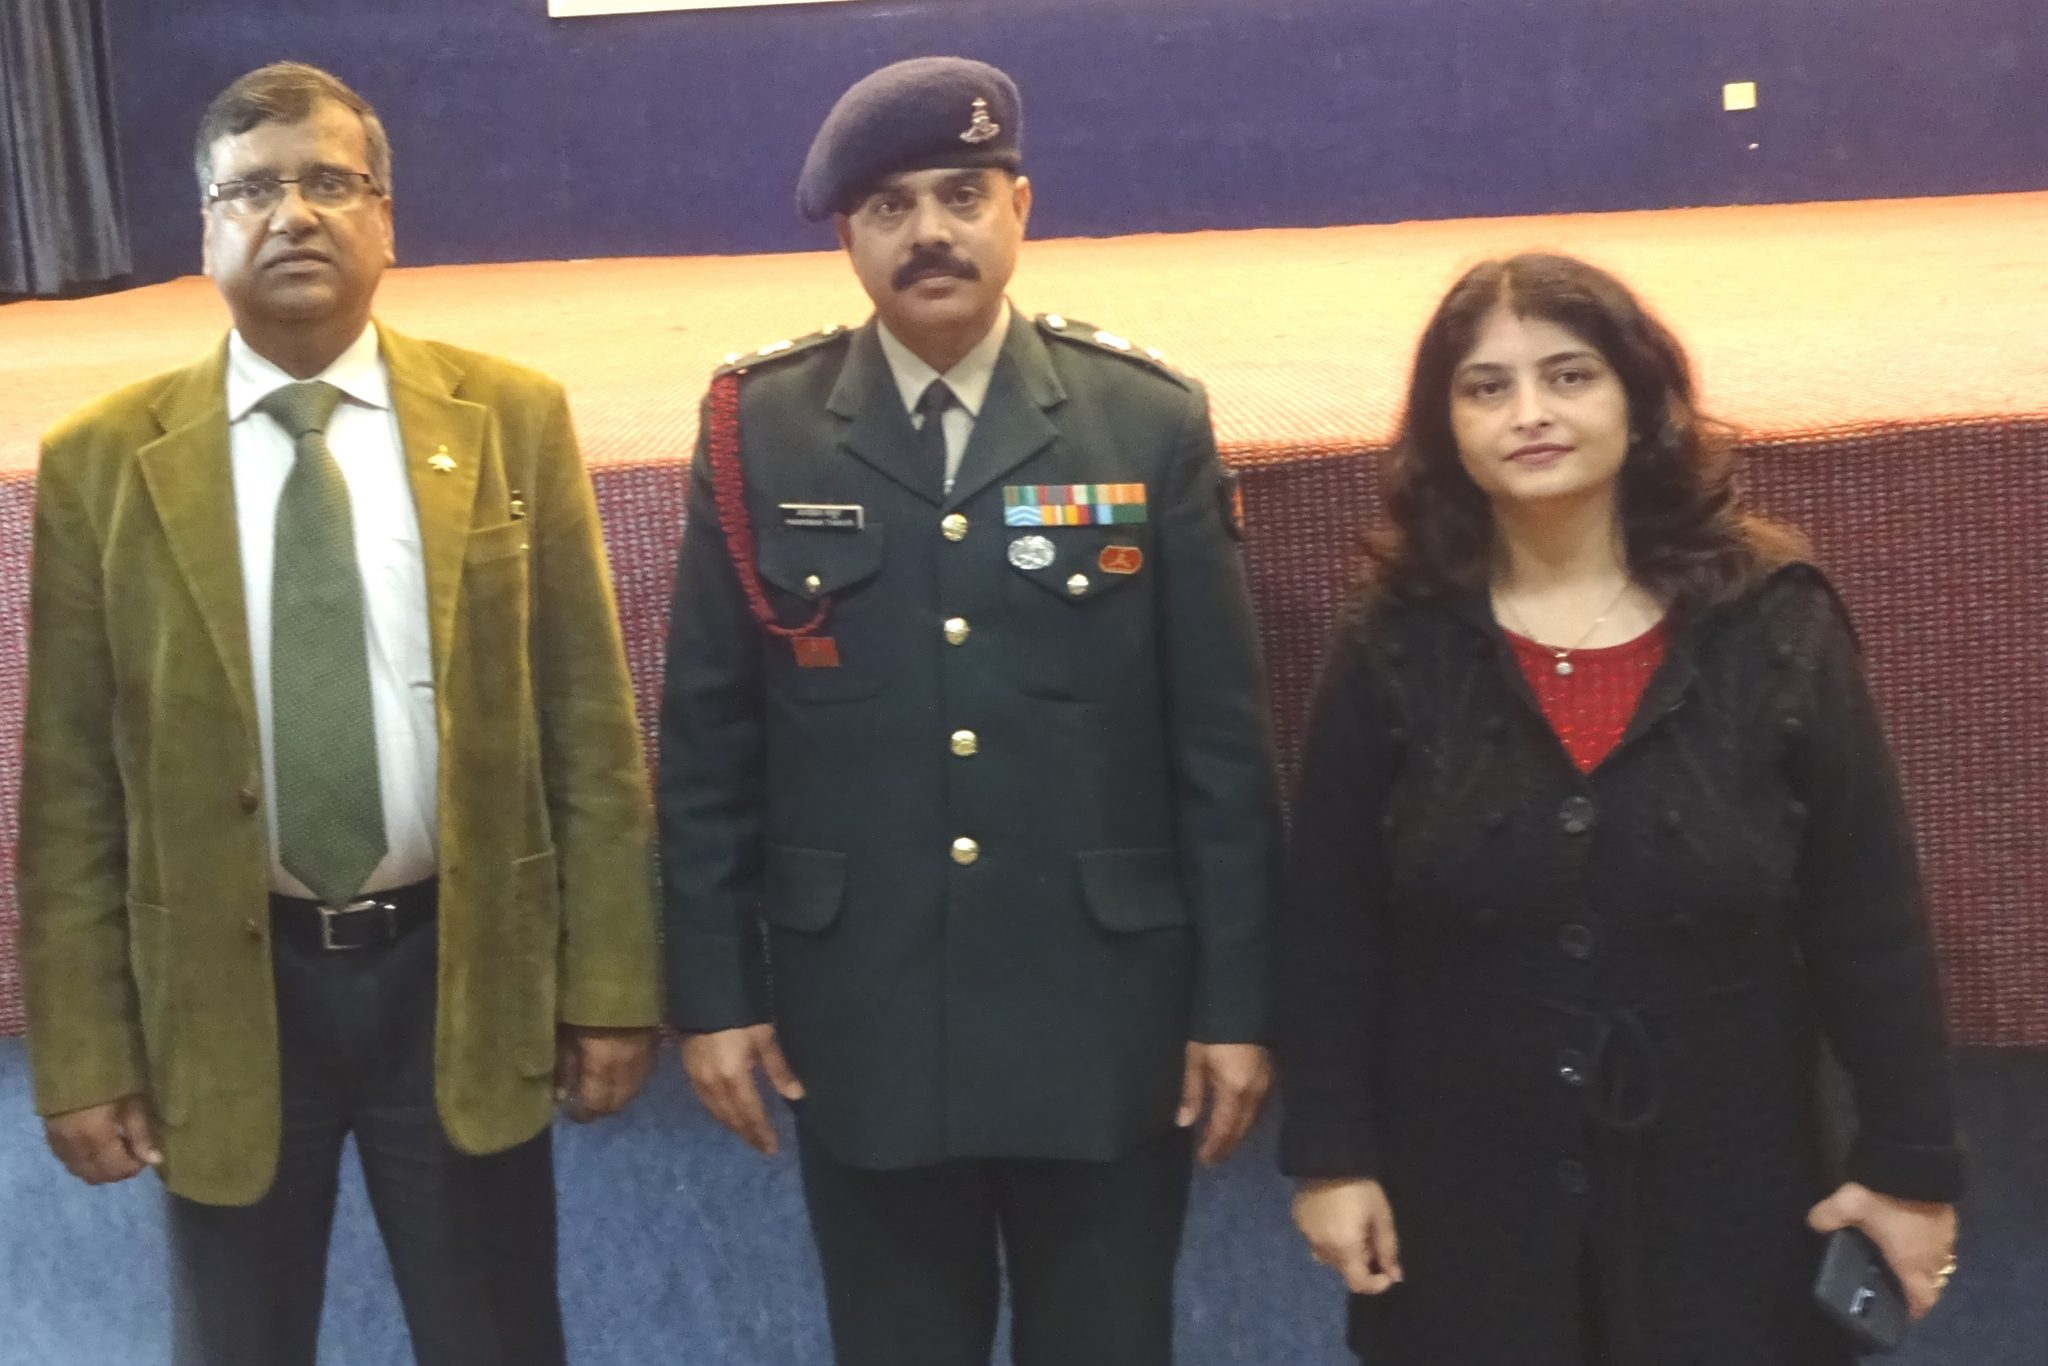 INDIAN ARMY VISITED MANAV RACHNA